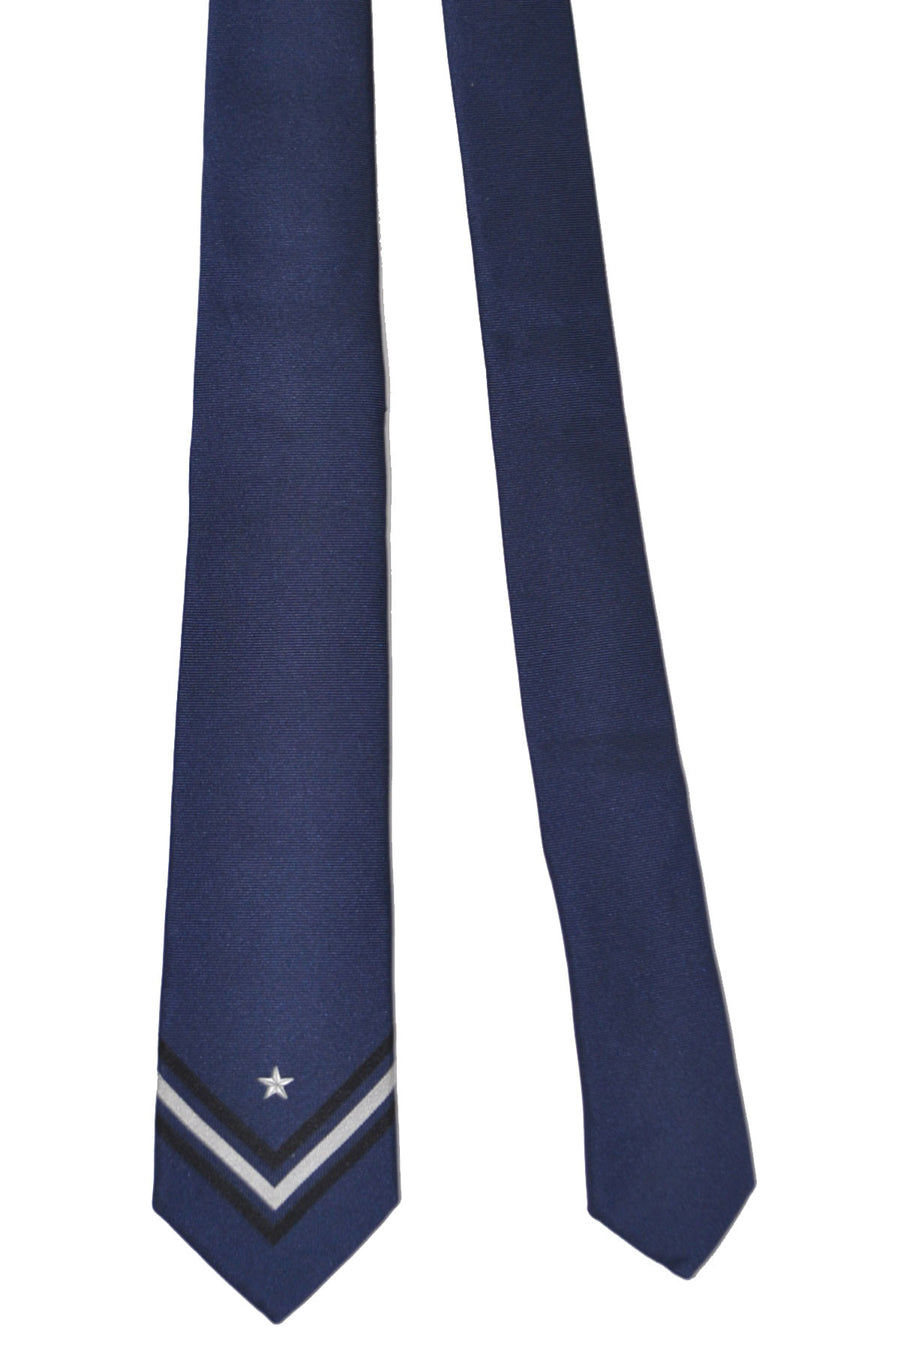 Givenchy Tie Dark Blue Silver Black Star Grosgrain Design - Narrow Cut